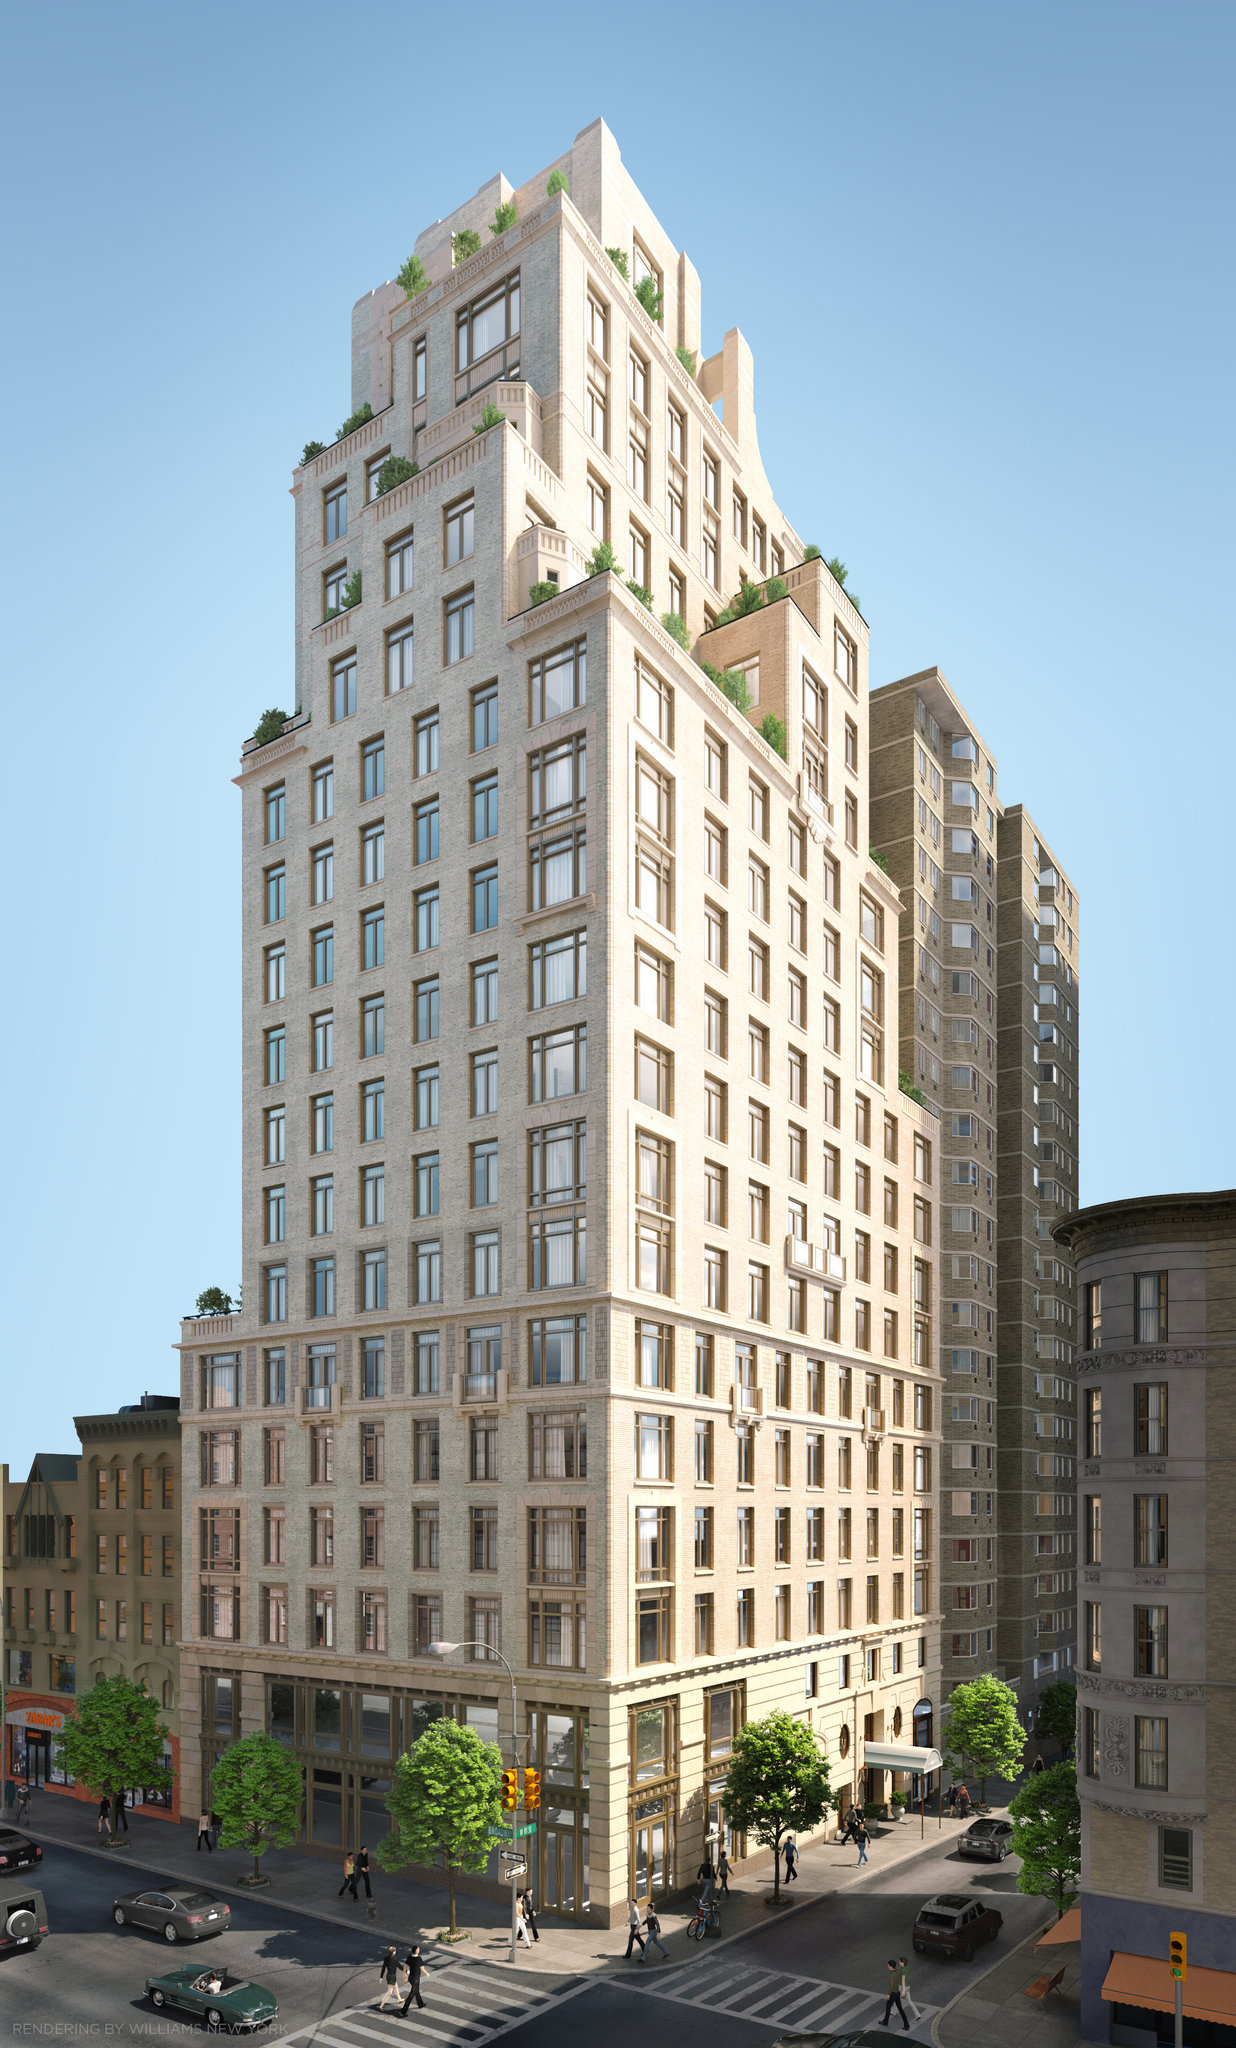 250 West 81st Street, by Williams New York